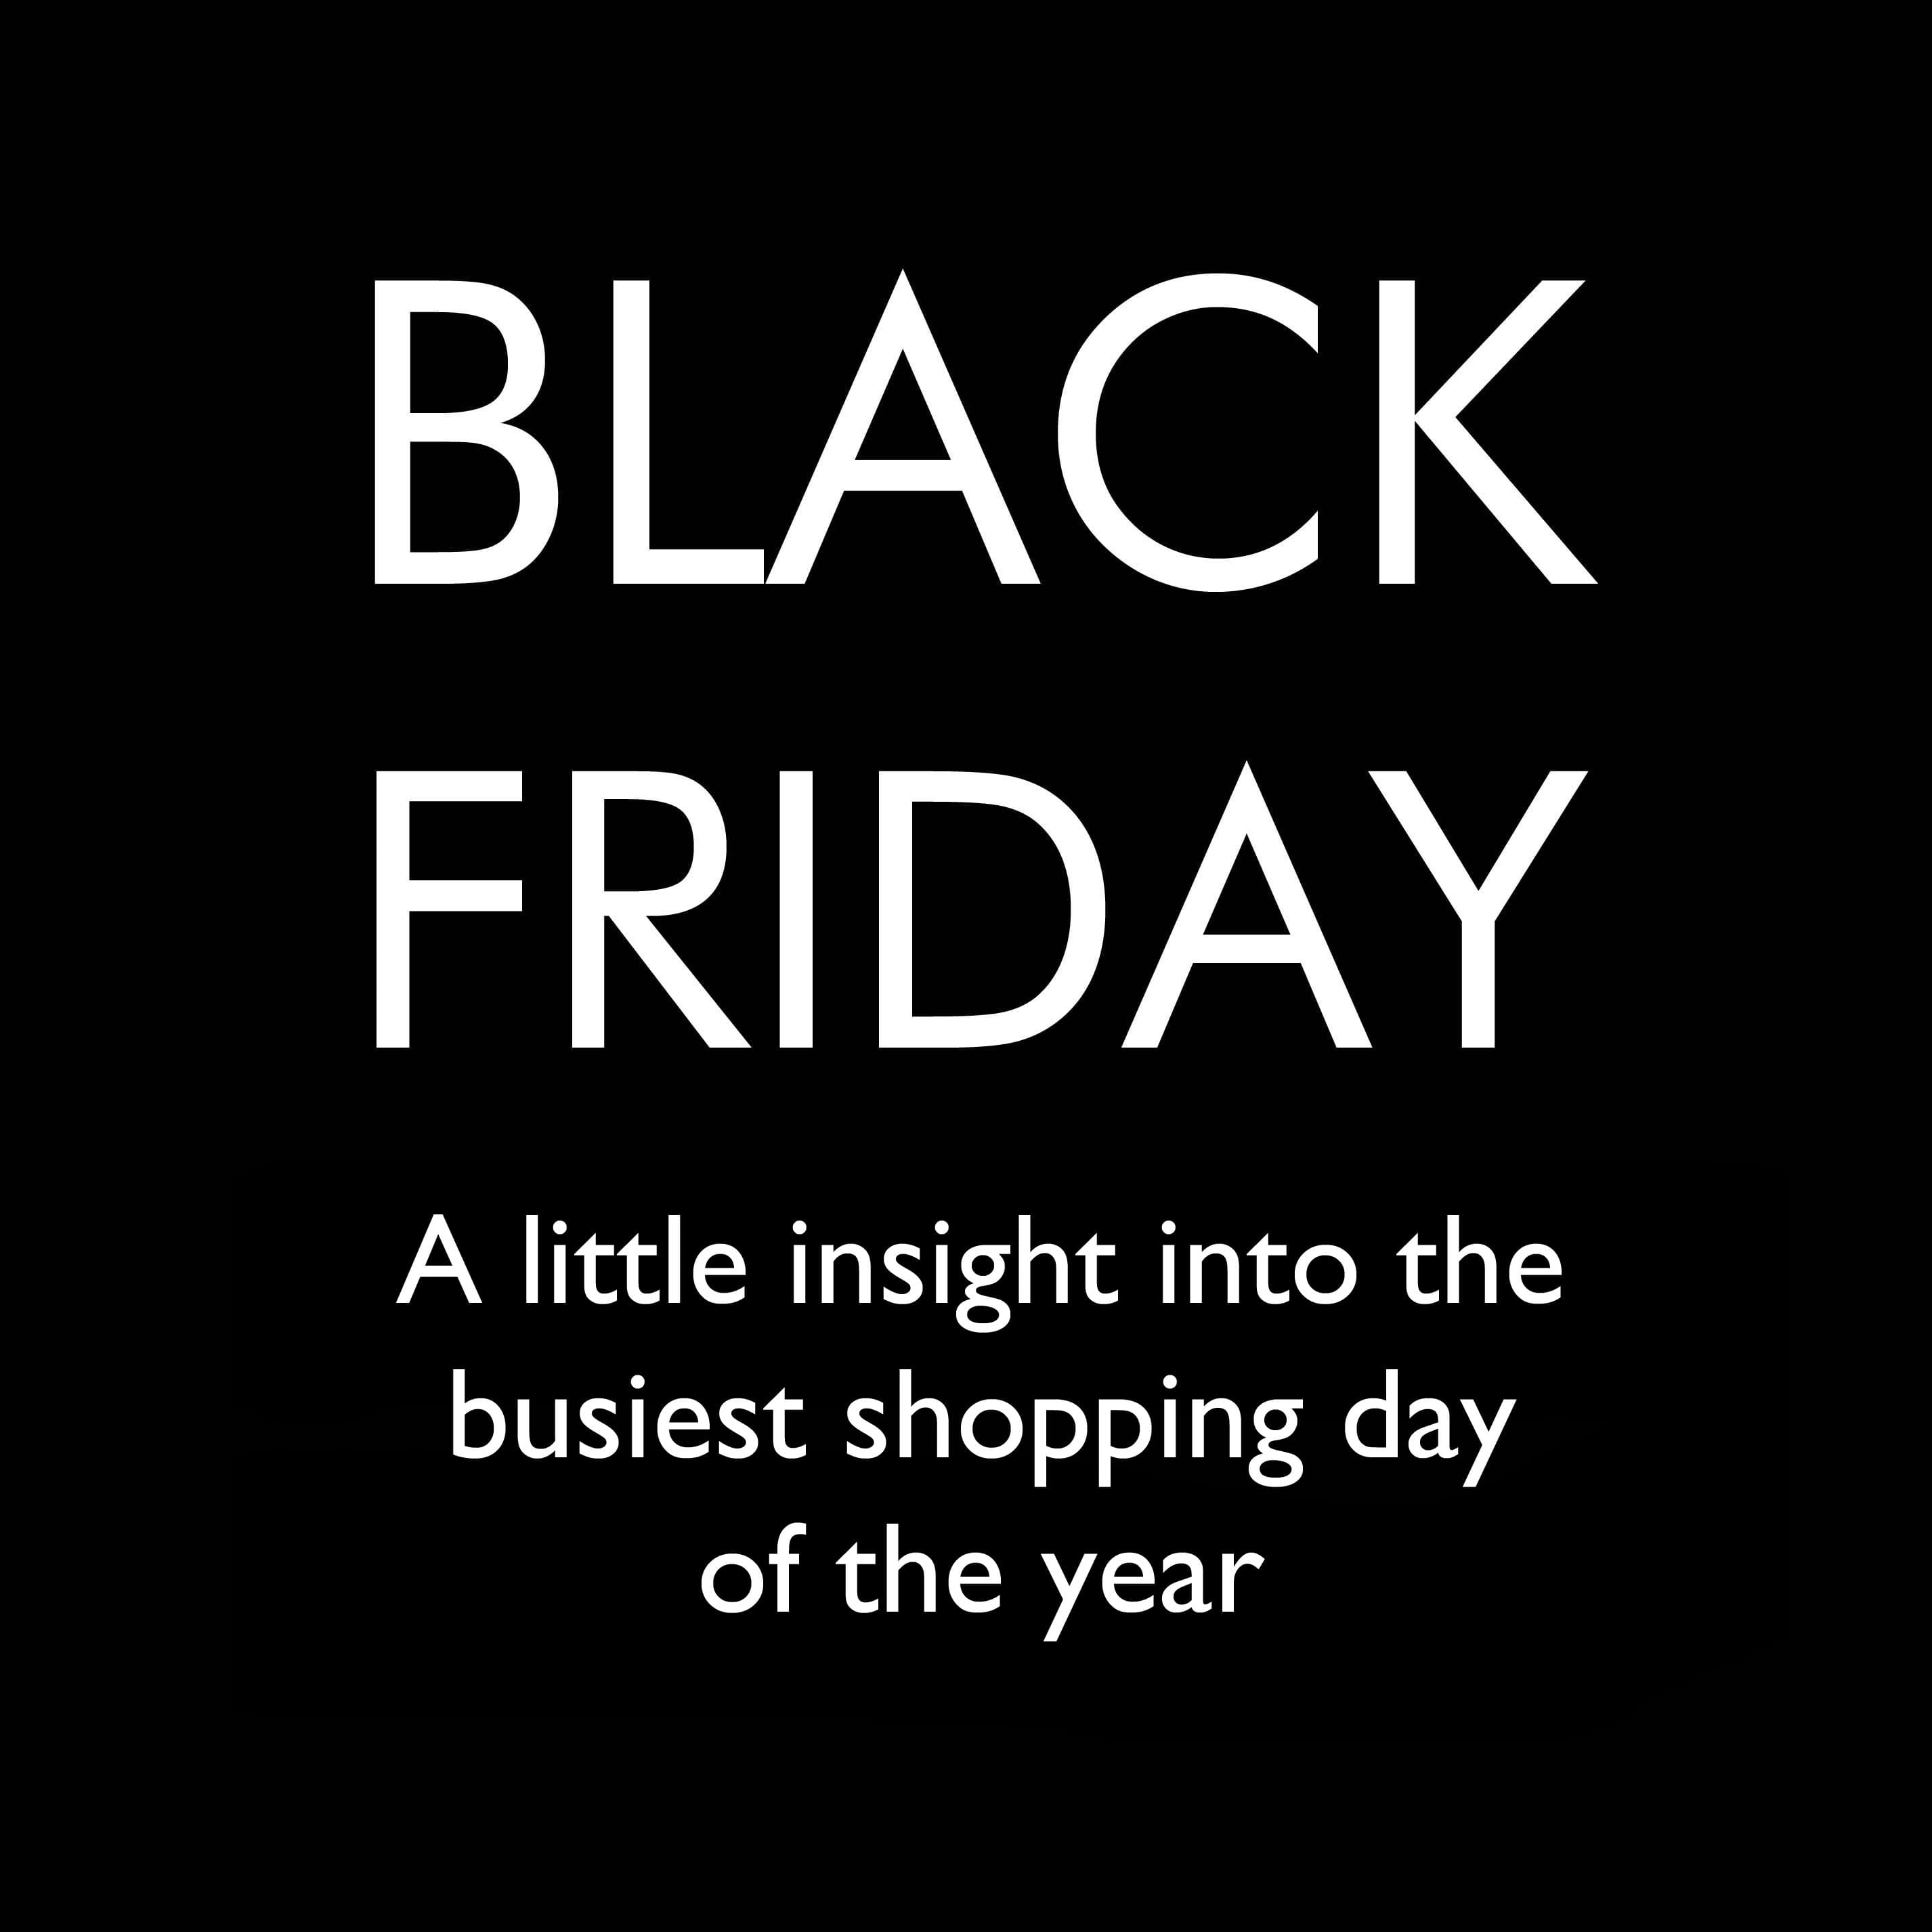 Black Friday - The busiest shopping day of the year